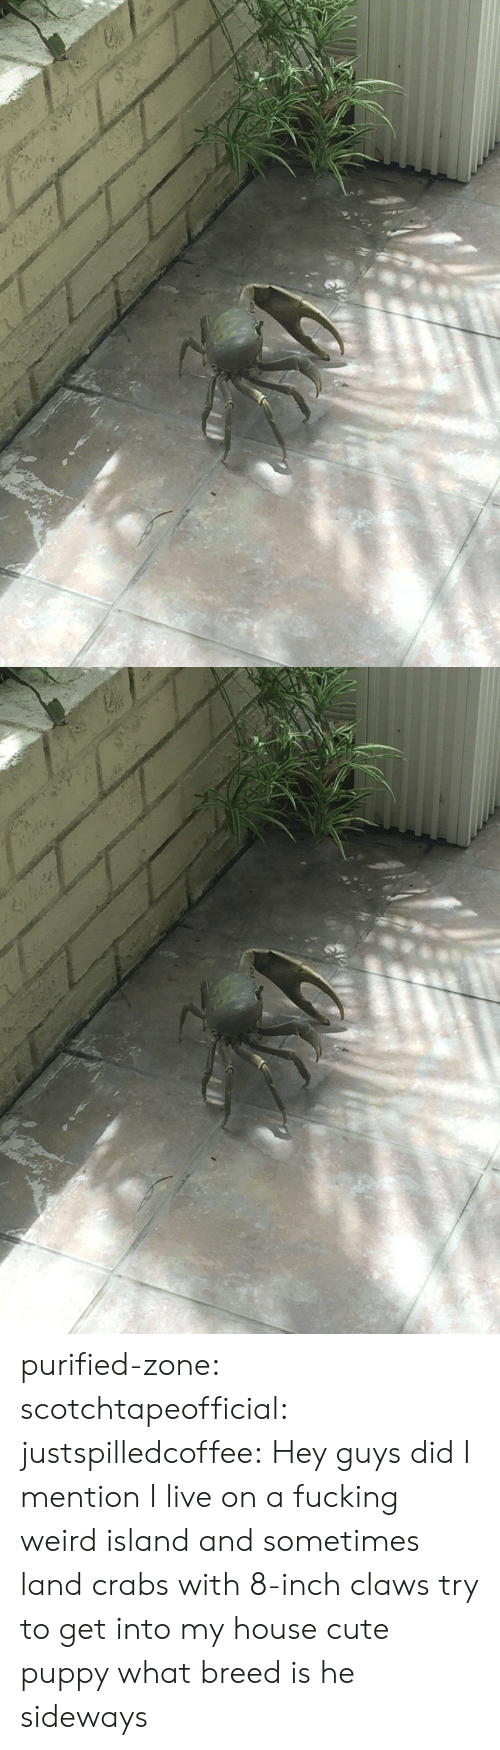 fucking weird: purified-zone: scotchtapeofficial:  justspilledcoffee:  Hey guys did I mention I live on a fucking weird island and sometimes land crabs with 8-inch claws try to get into my house  cute puppy what breed is he  sideways